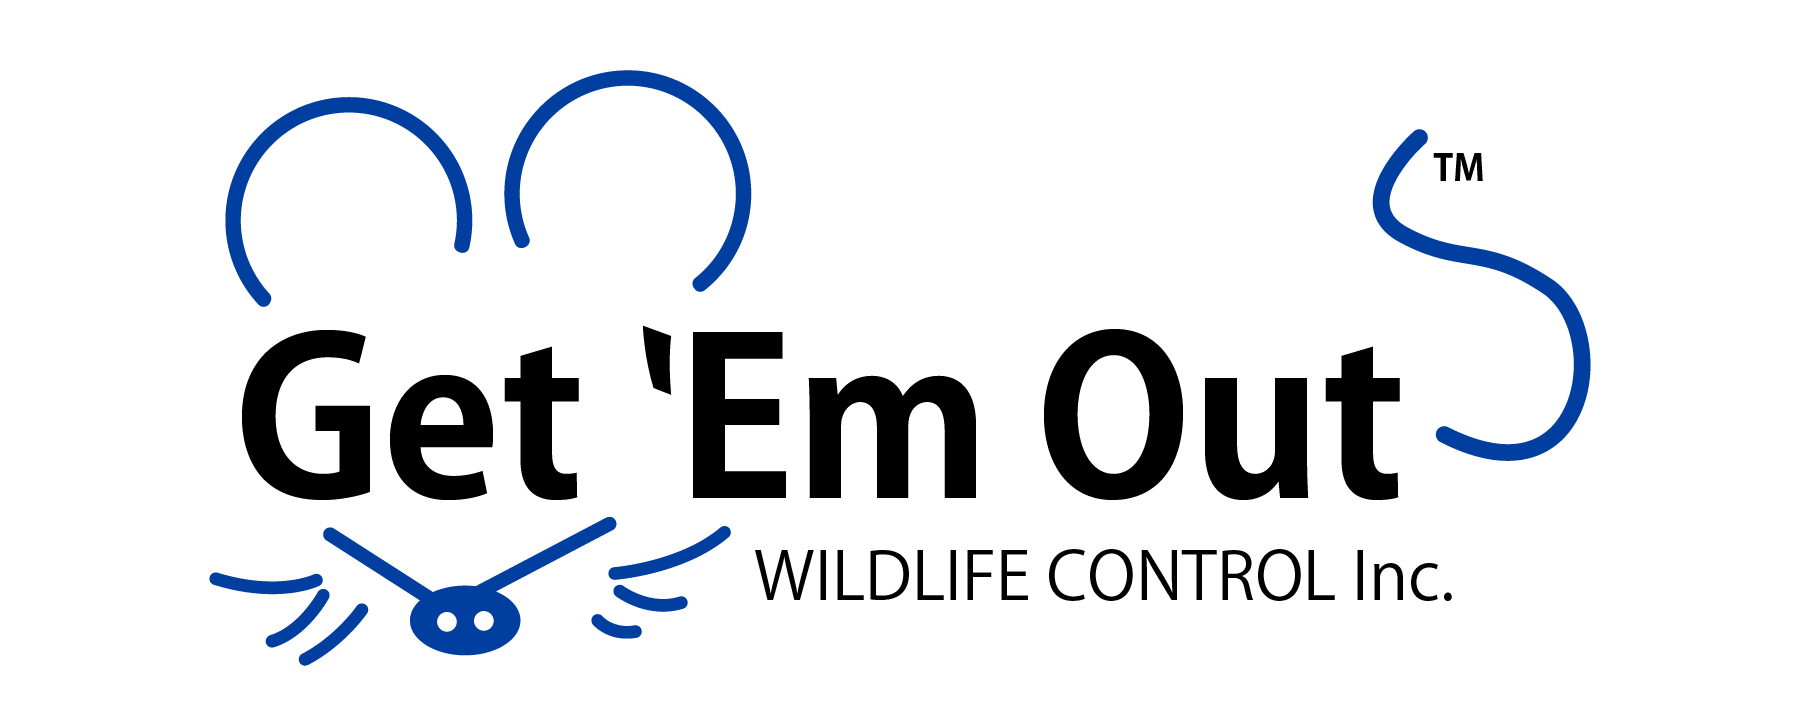 Get 'Em Out Wildlife Control (logo)